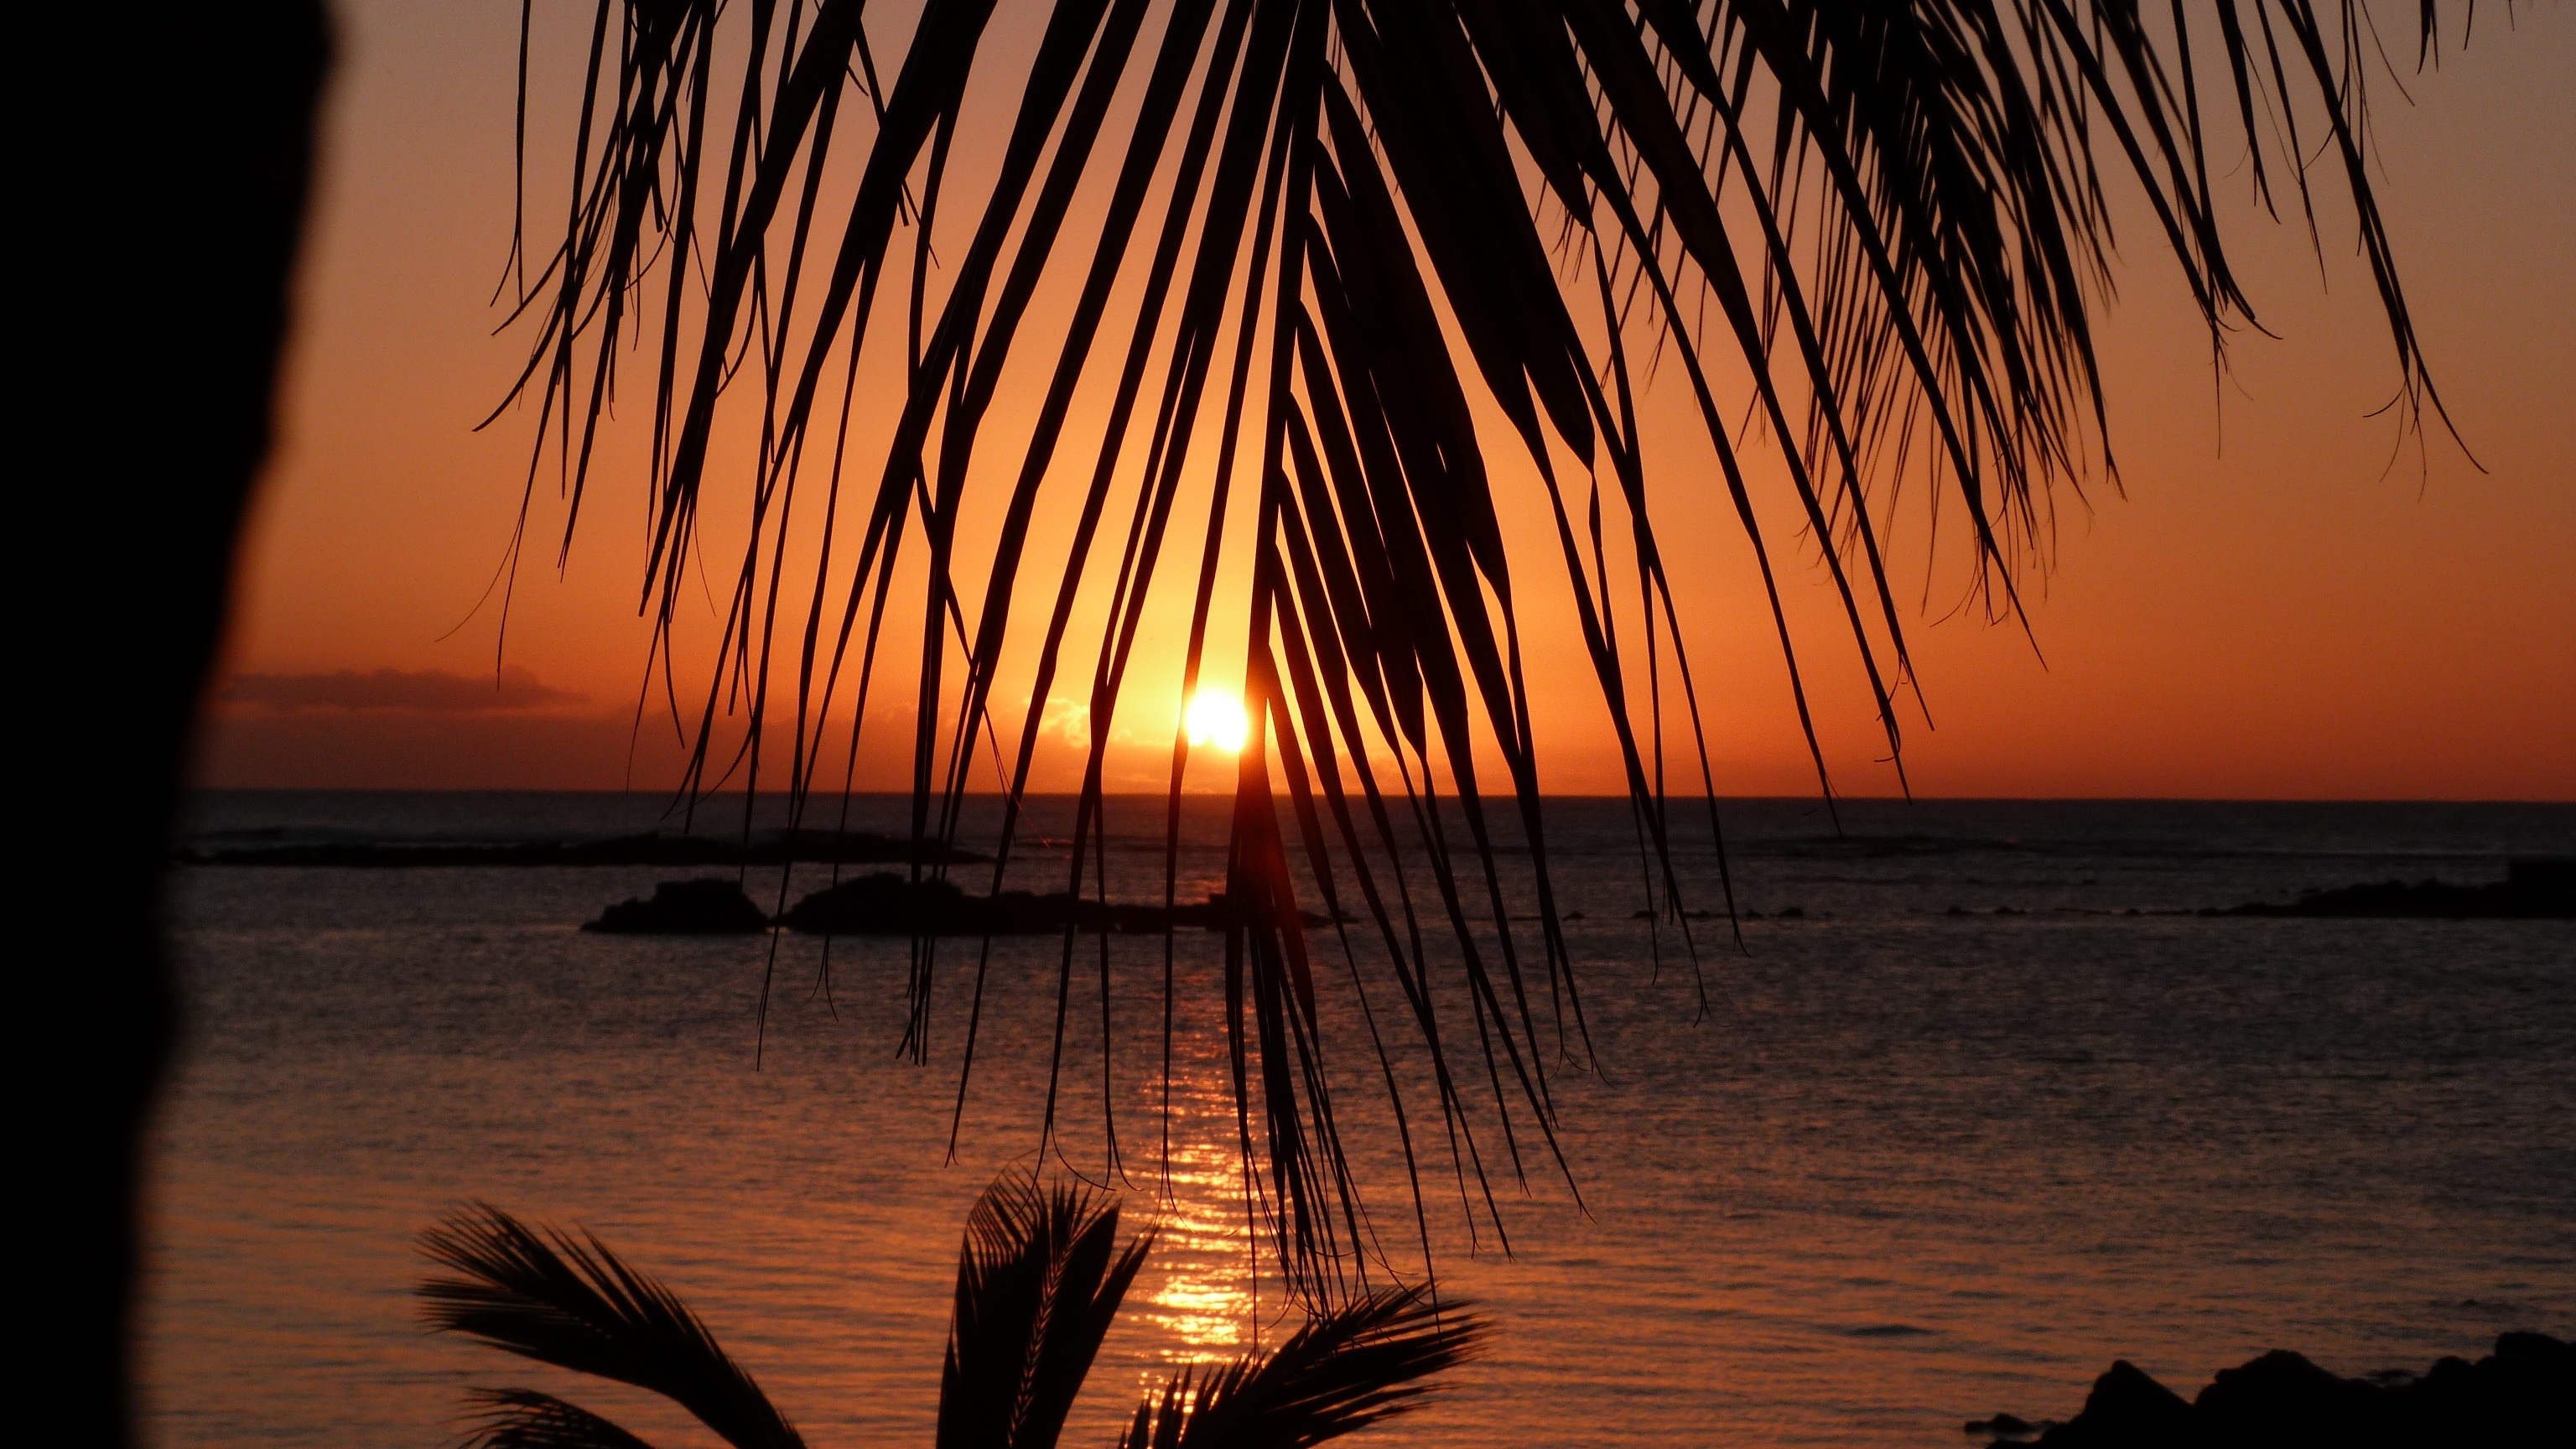 VOYAGES OUTRE-MERS ile-maurice-sunset-palmiers-mer